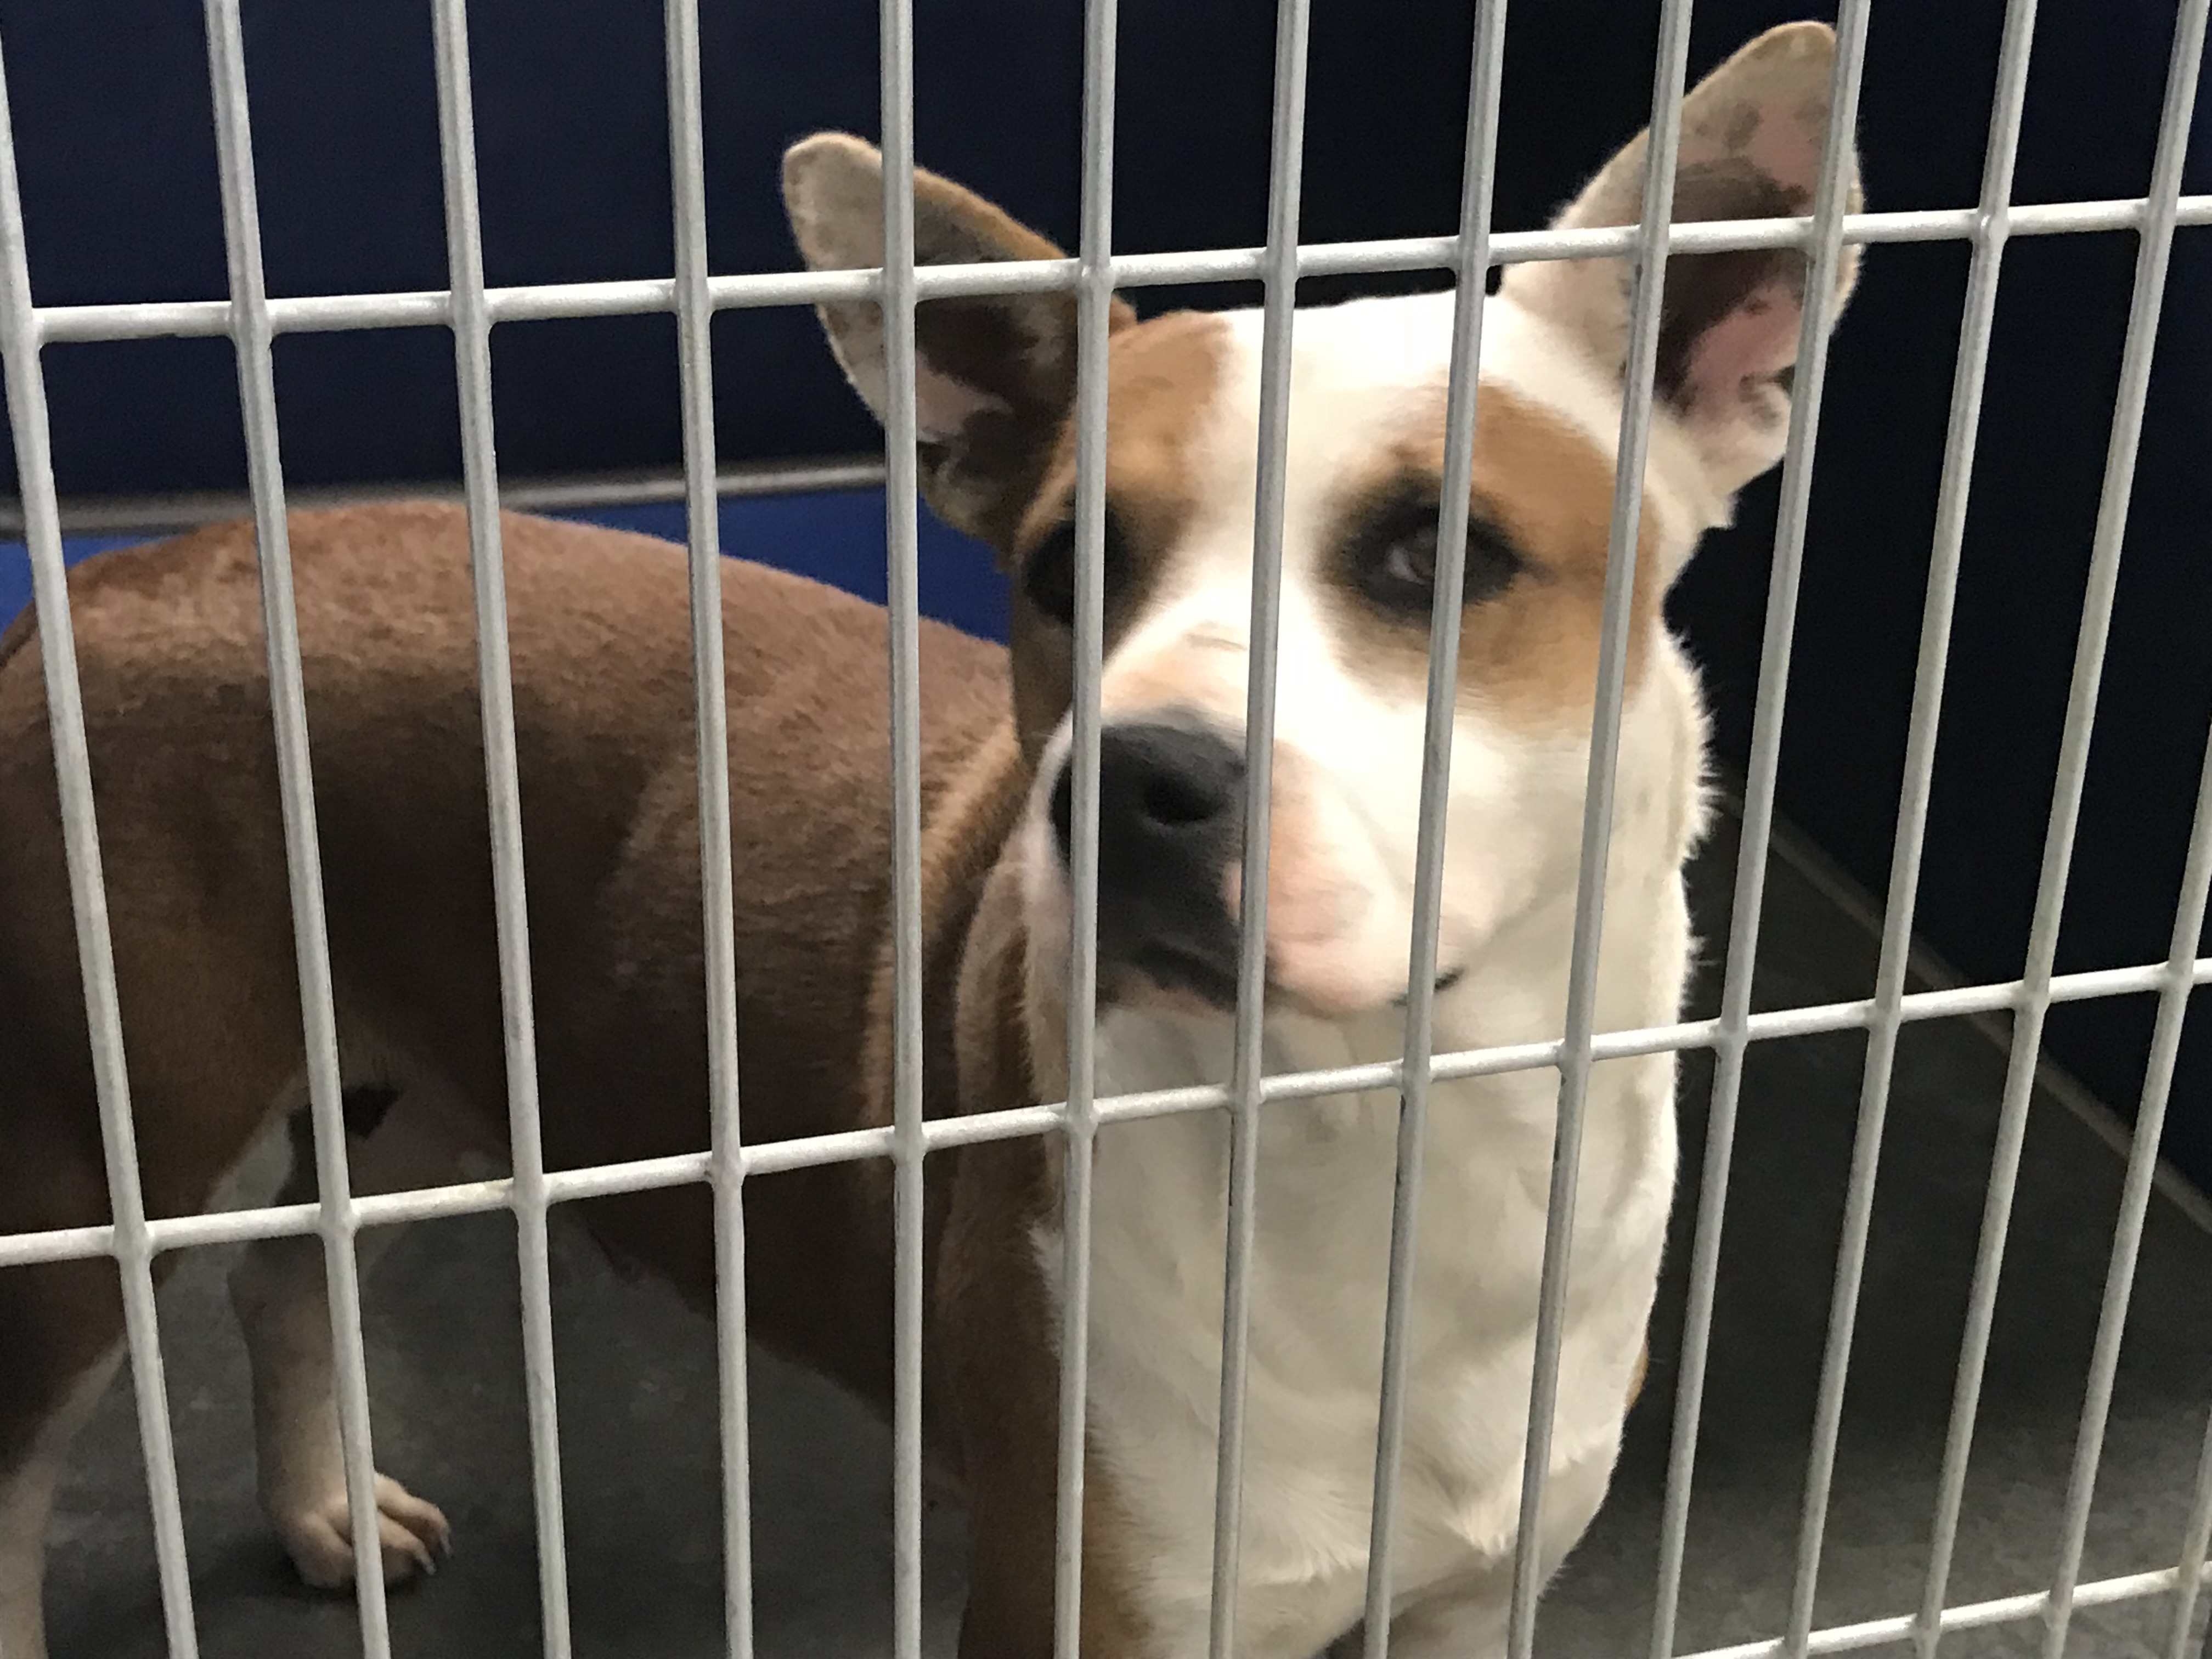 "<div class=""meta image-caption""><div class=""origin-logo origin-image wtvd""><span>WTVD</span></div><span class=""caption-text"">These dogs are available for adoption at the Vance County Animal Shelter.</span></div>"